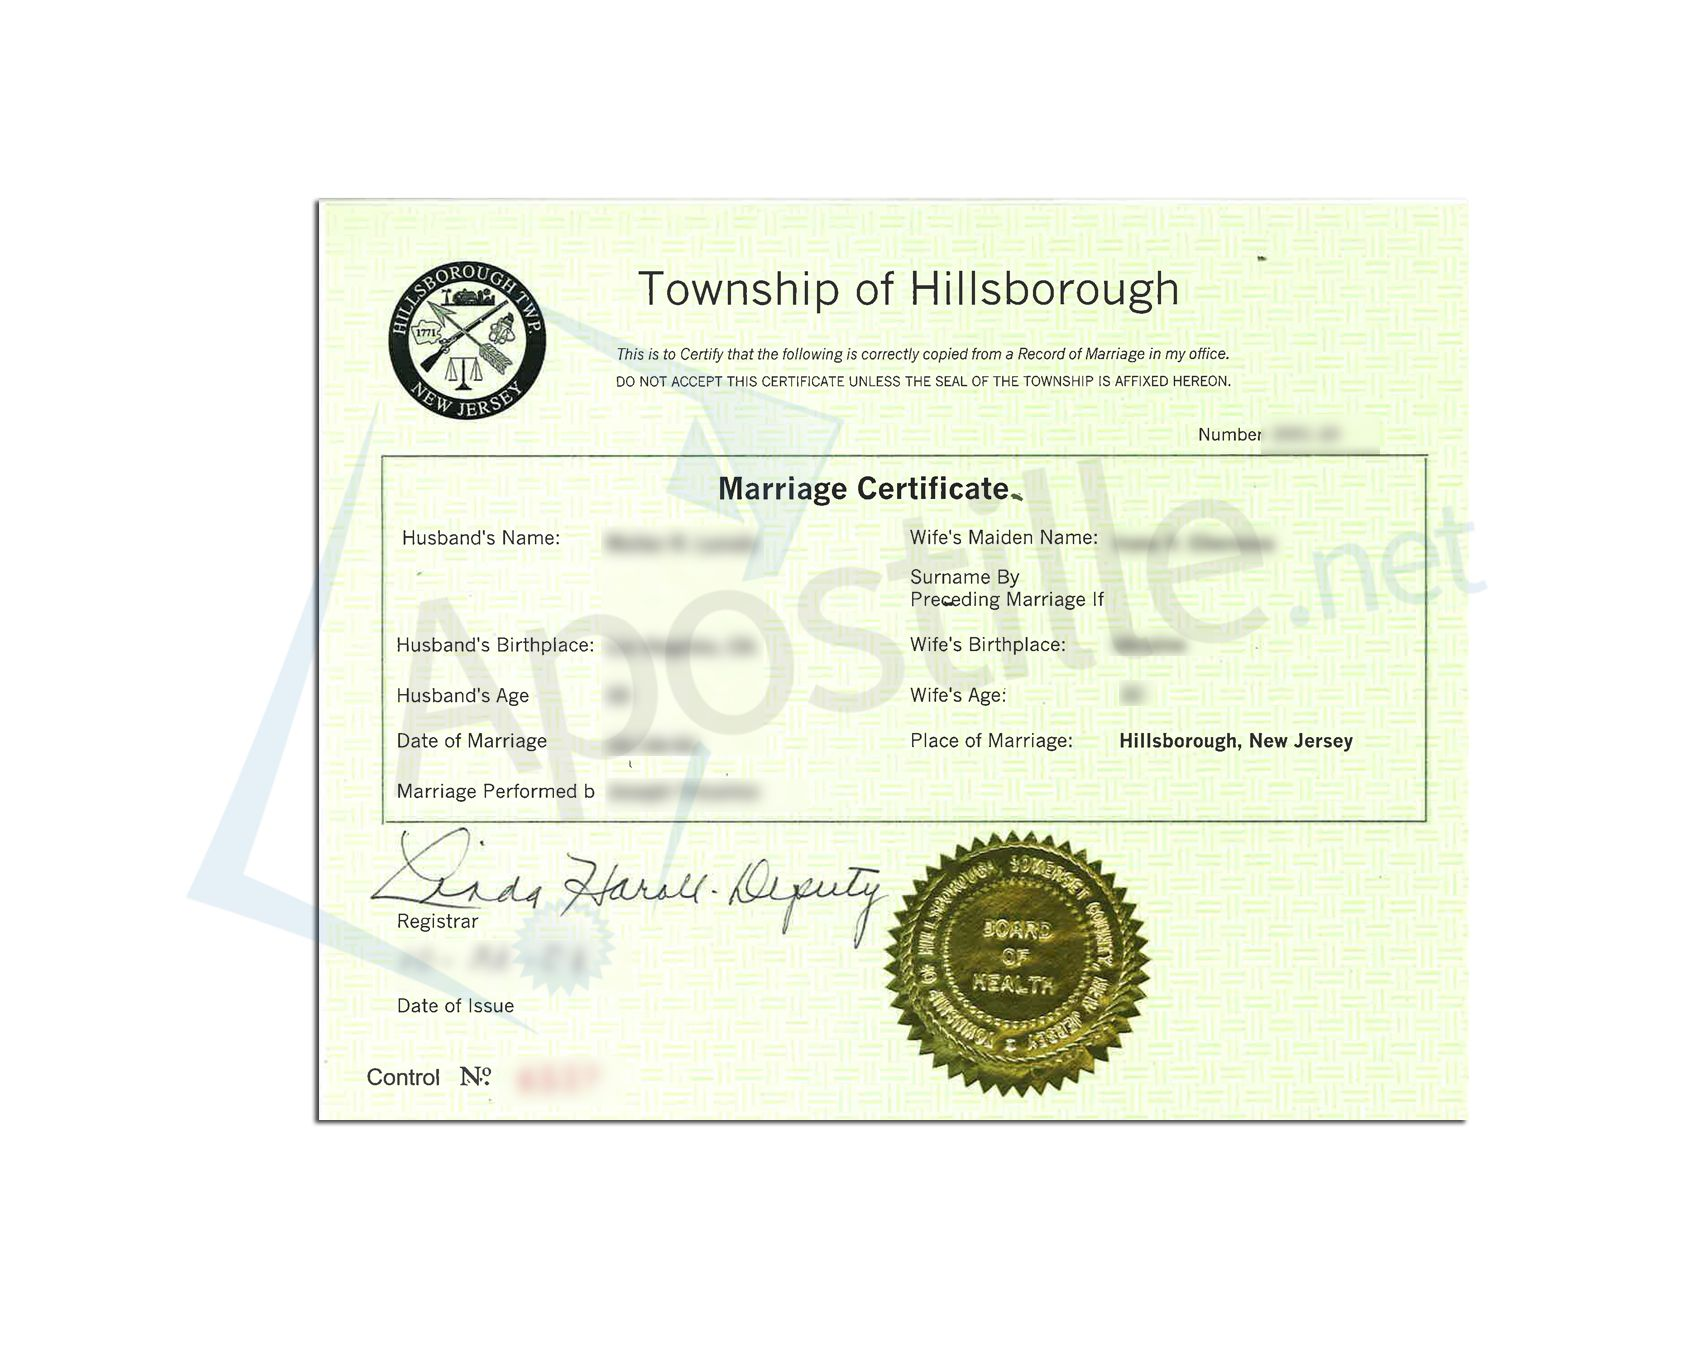 Hillsborough New Jersey Marriage Certificate Issued By The Deputy